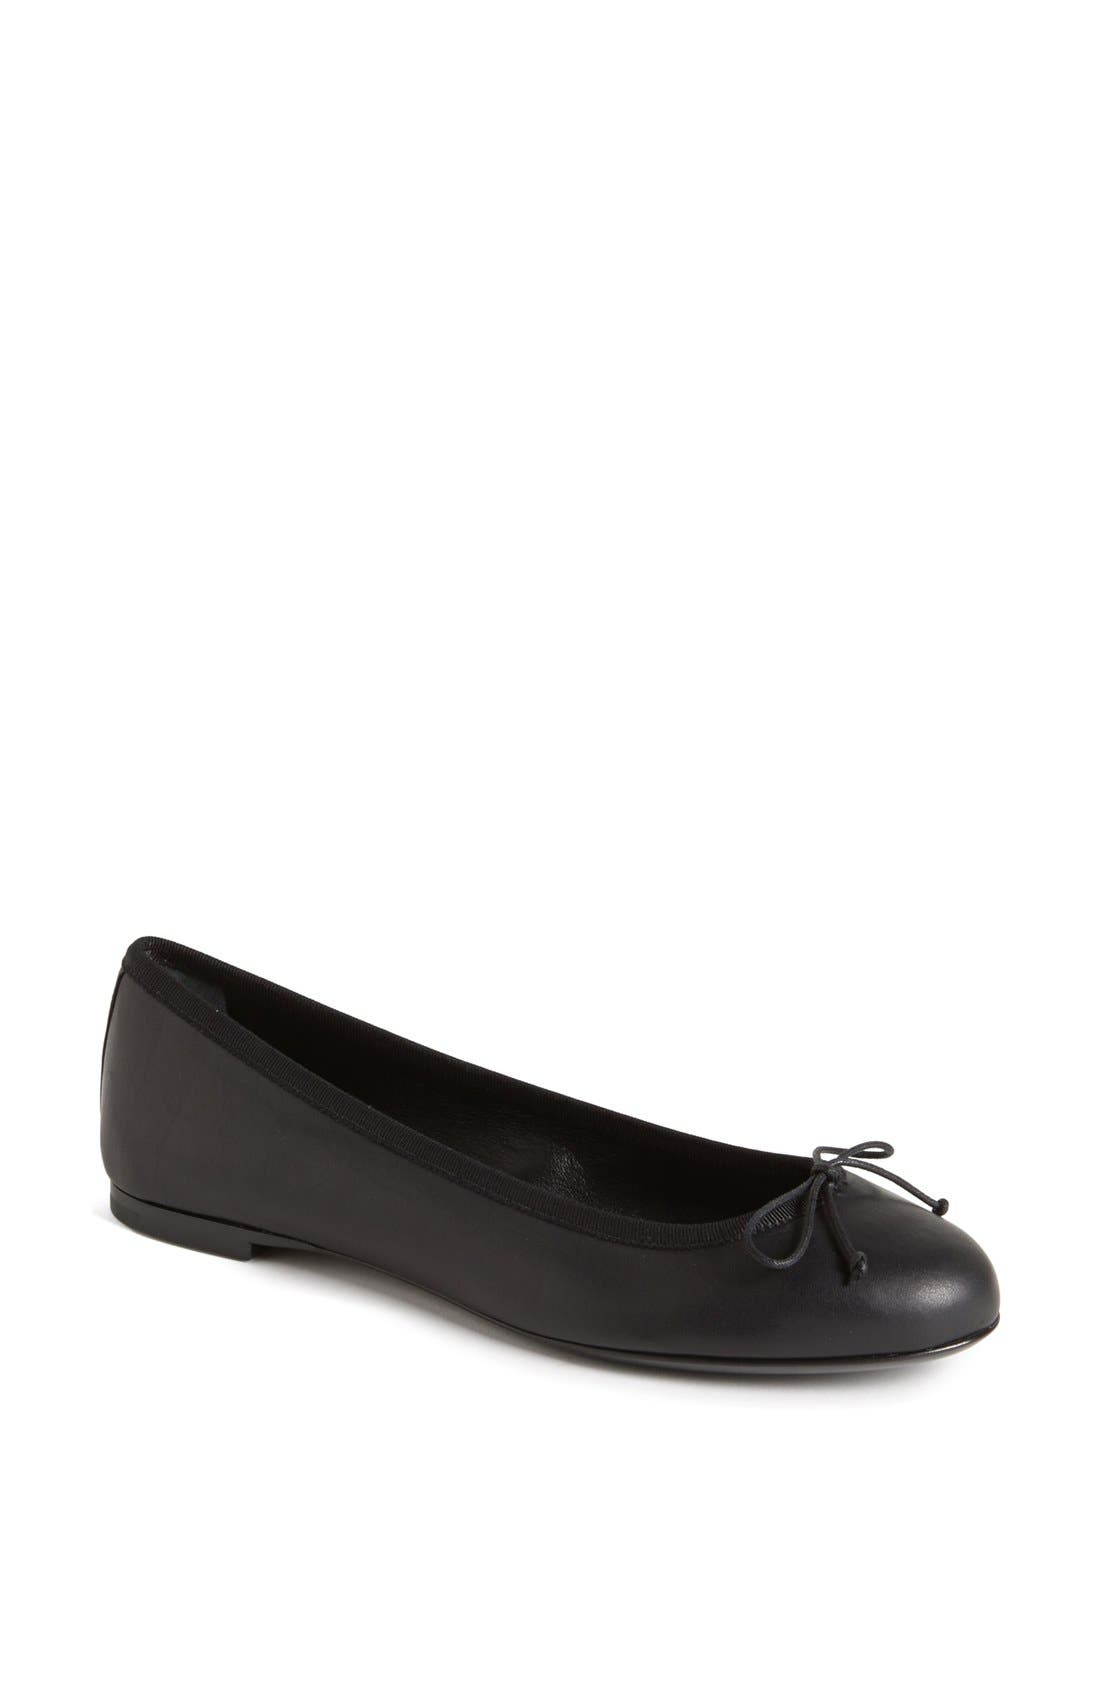 Alternate Image 1 Selected - Saint Laurent 'Dance' Leather Ballet Flat